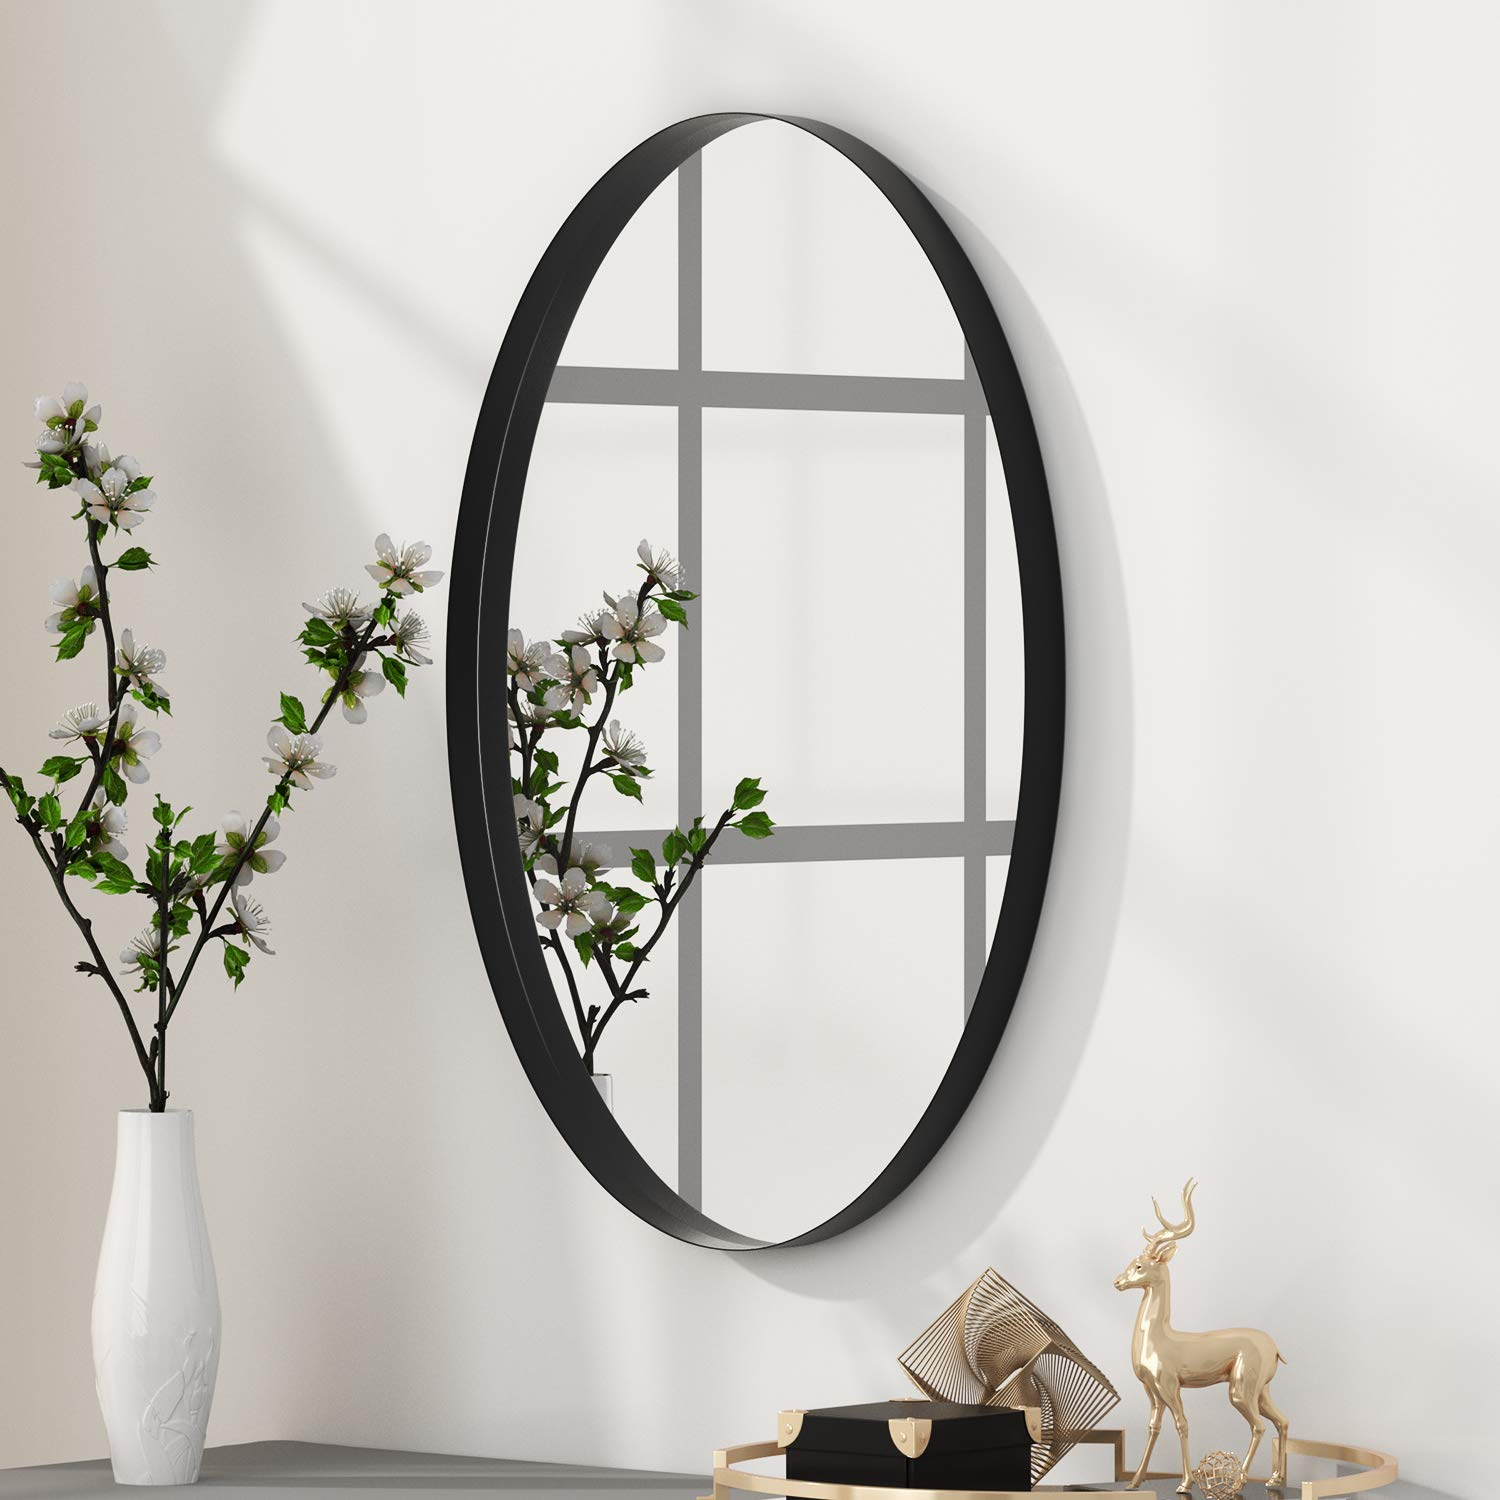 Entryway Bedroom NXHOME Oval Black-Bathroom Decorative Wall Mirror Living Room Wall-Mounted 24X36in Clean Decor Stainless Steel Framed Mirrors for Vanity